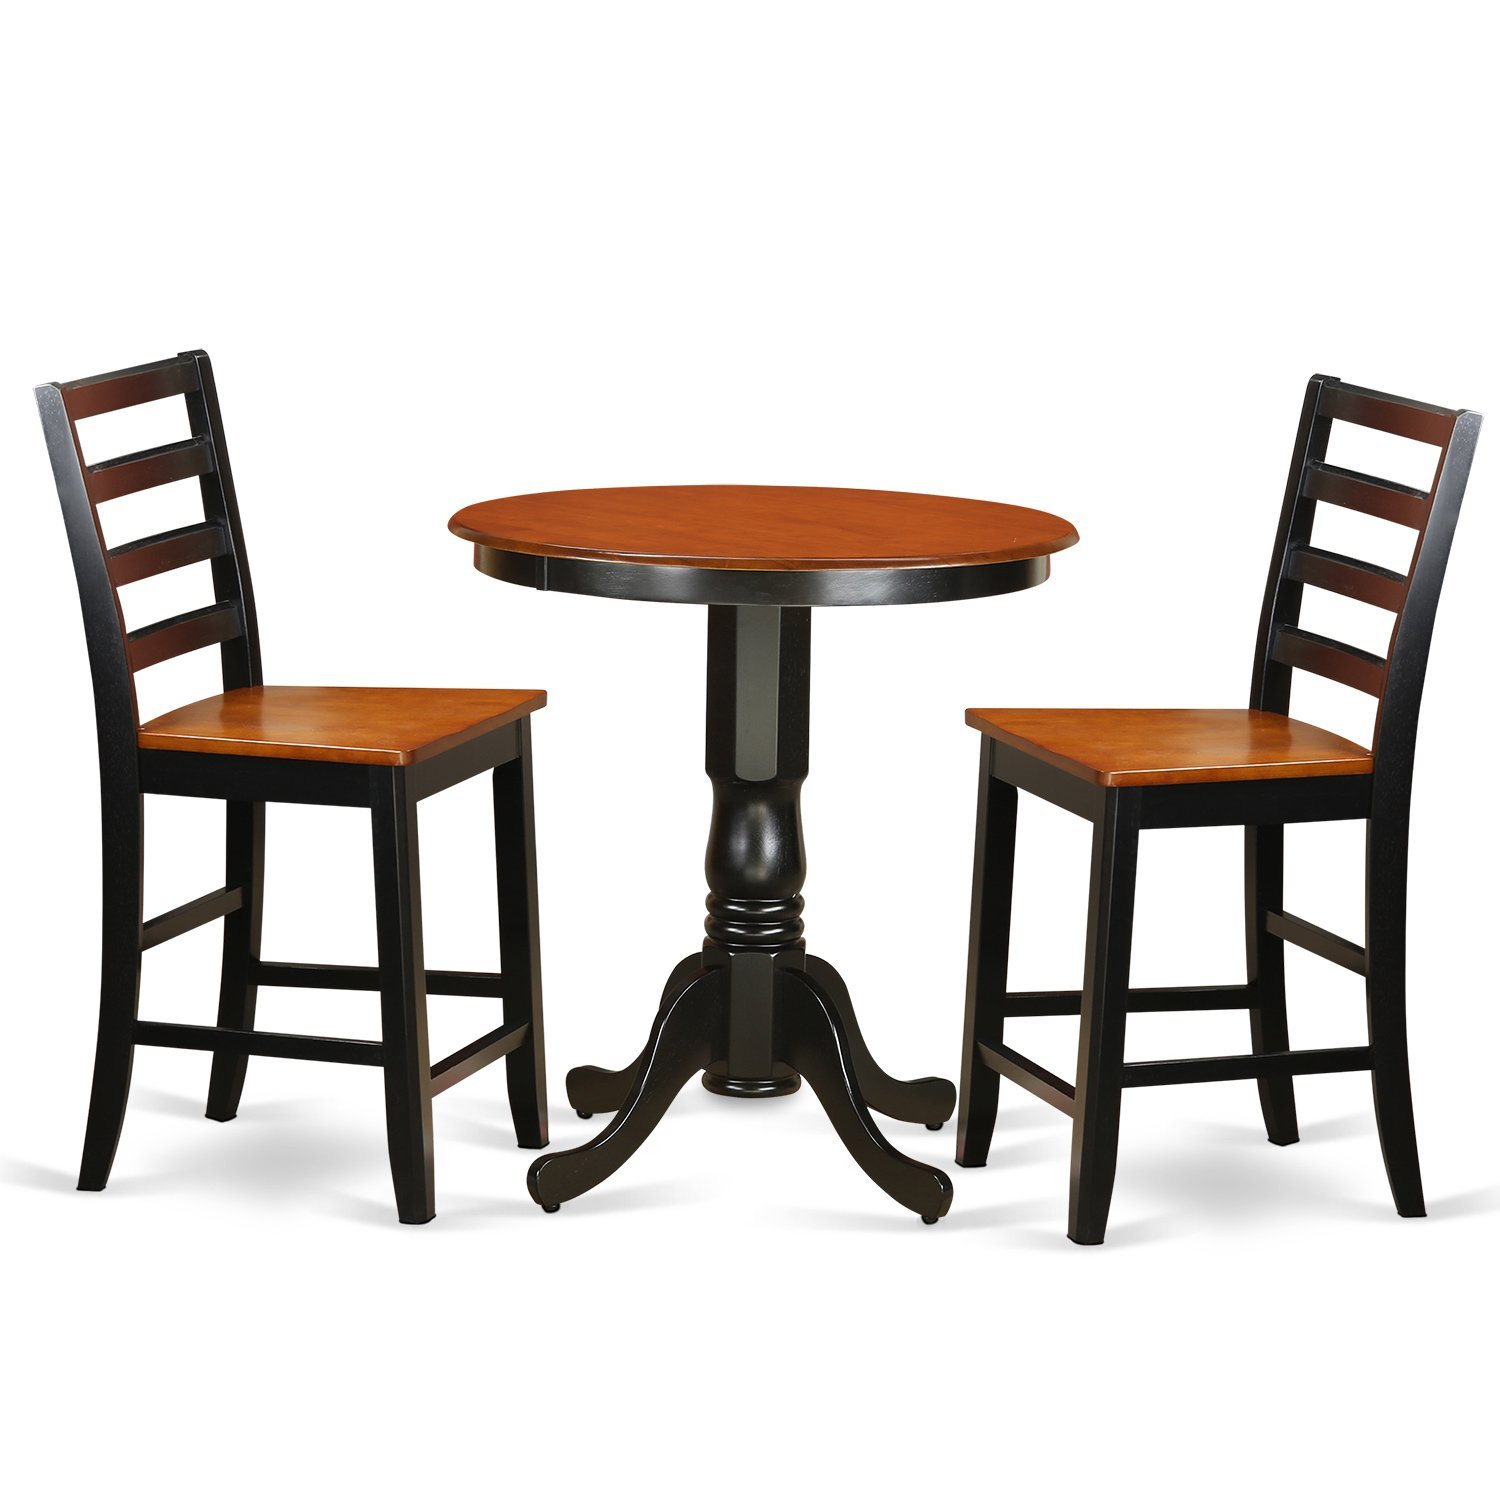 East West Furniture EDFA3-BLK-W 3 Piece Pub Table and 2 Kitchen Bar Stool Set